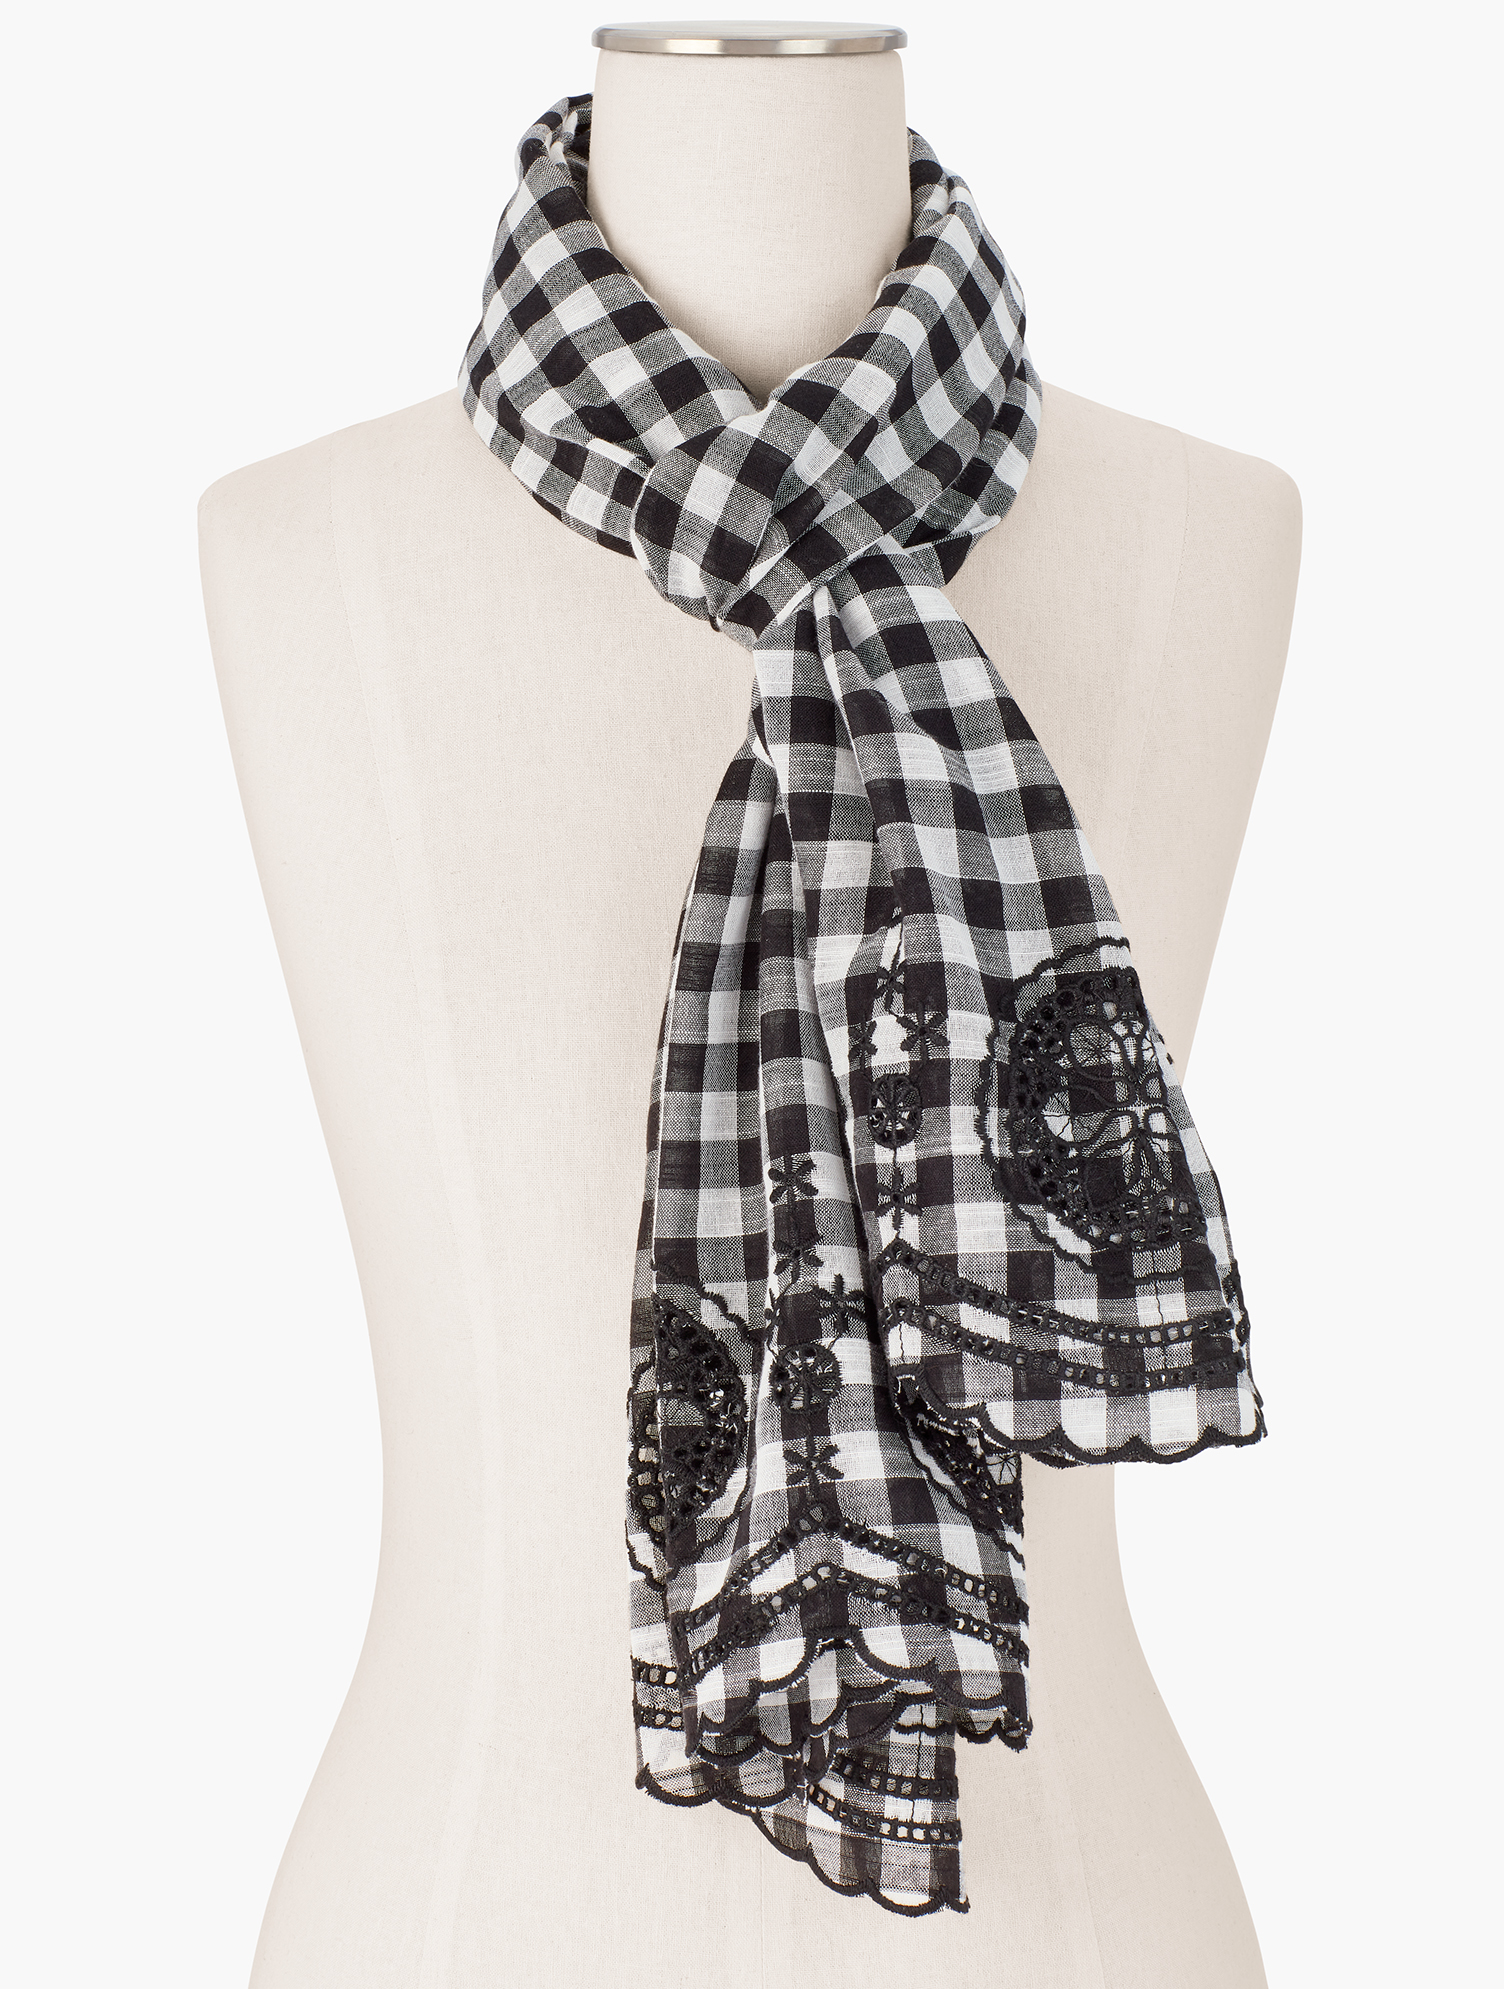 Classic gingham check elevates any outfit. Elegant embroidery completes the look. Features Imported Fit: 27 inches X 72 inches Material: 100% Cotton Care: Hand Wash; Line Dry Gingham Eyelet Oblong Scarf - Ivory - 001 - 100% Cotton Talbots